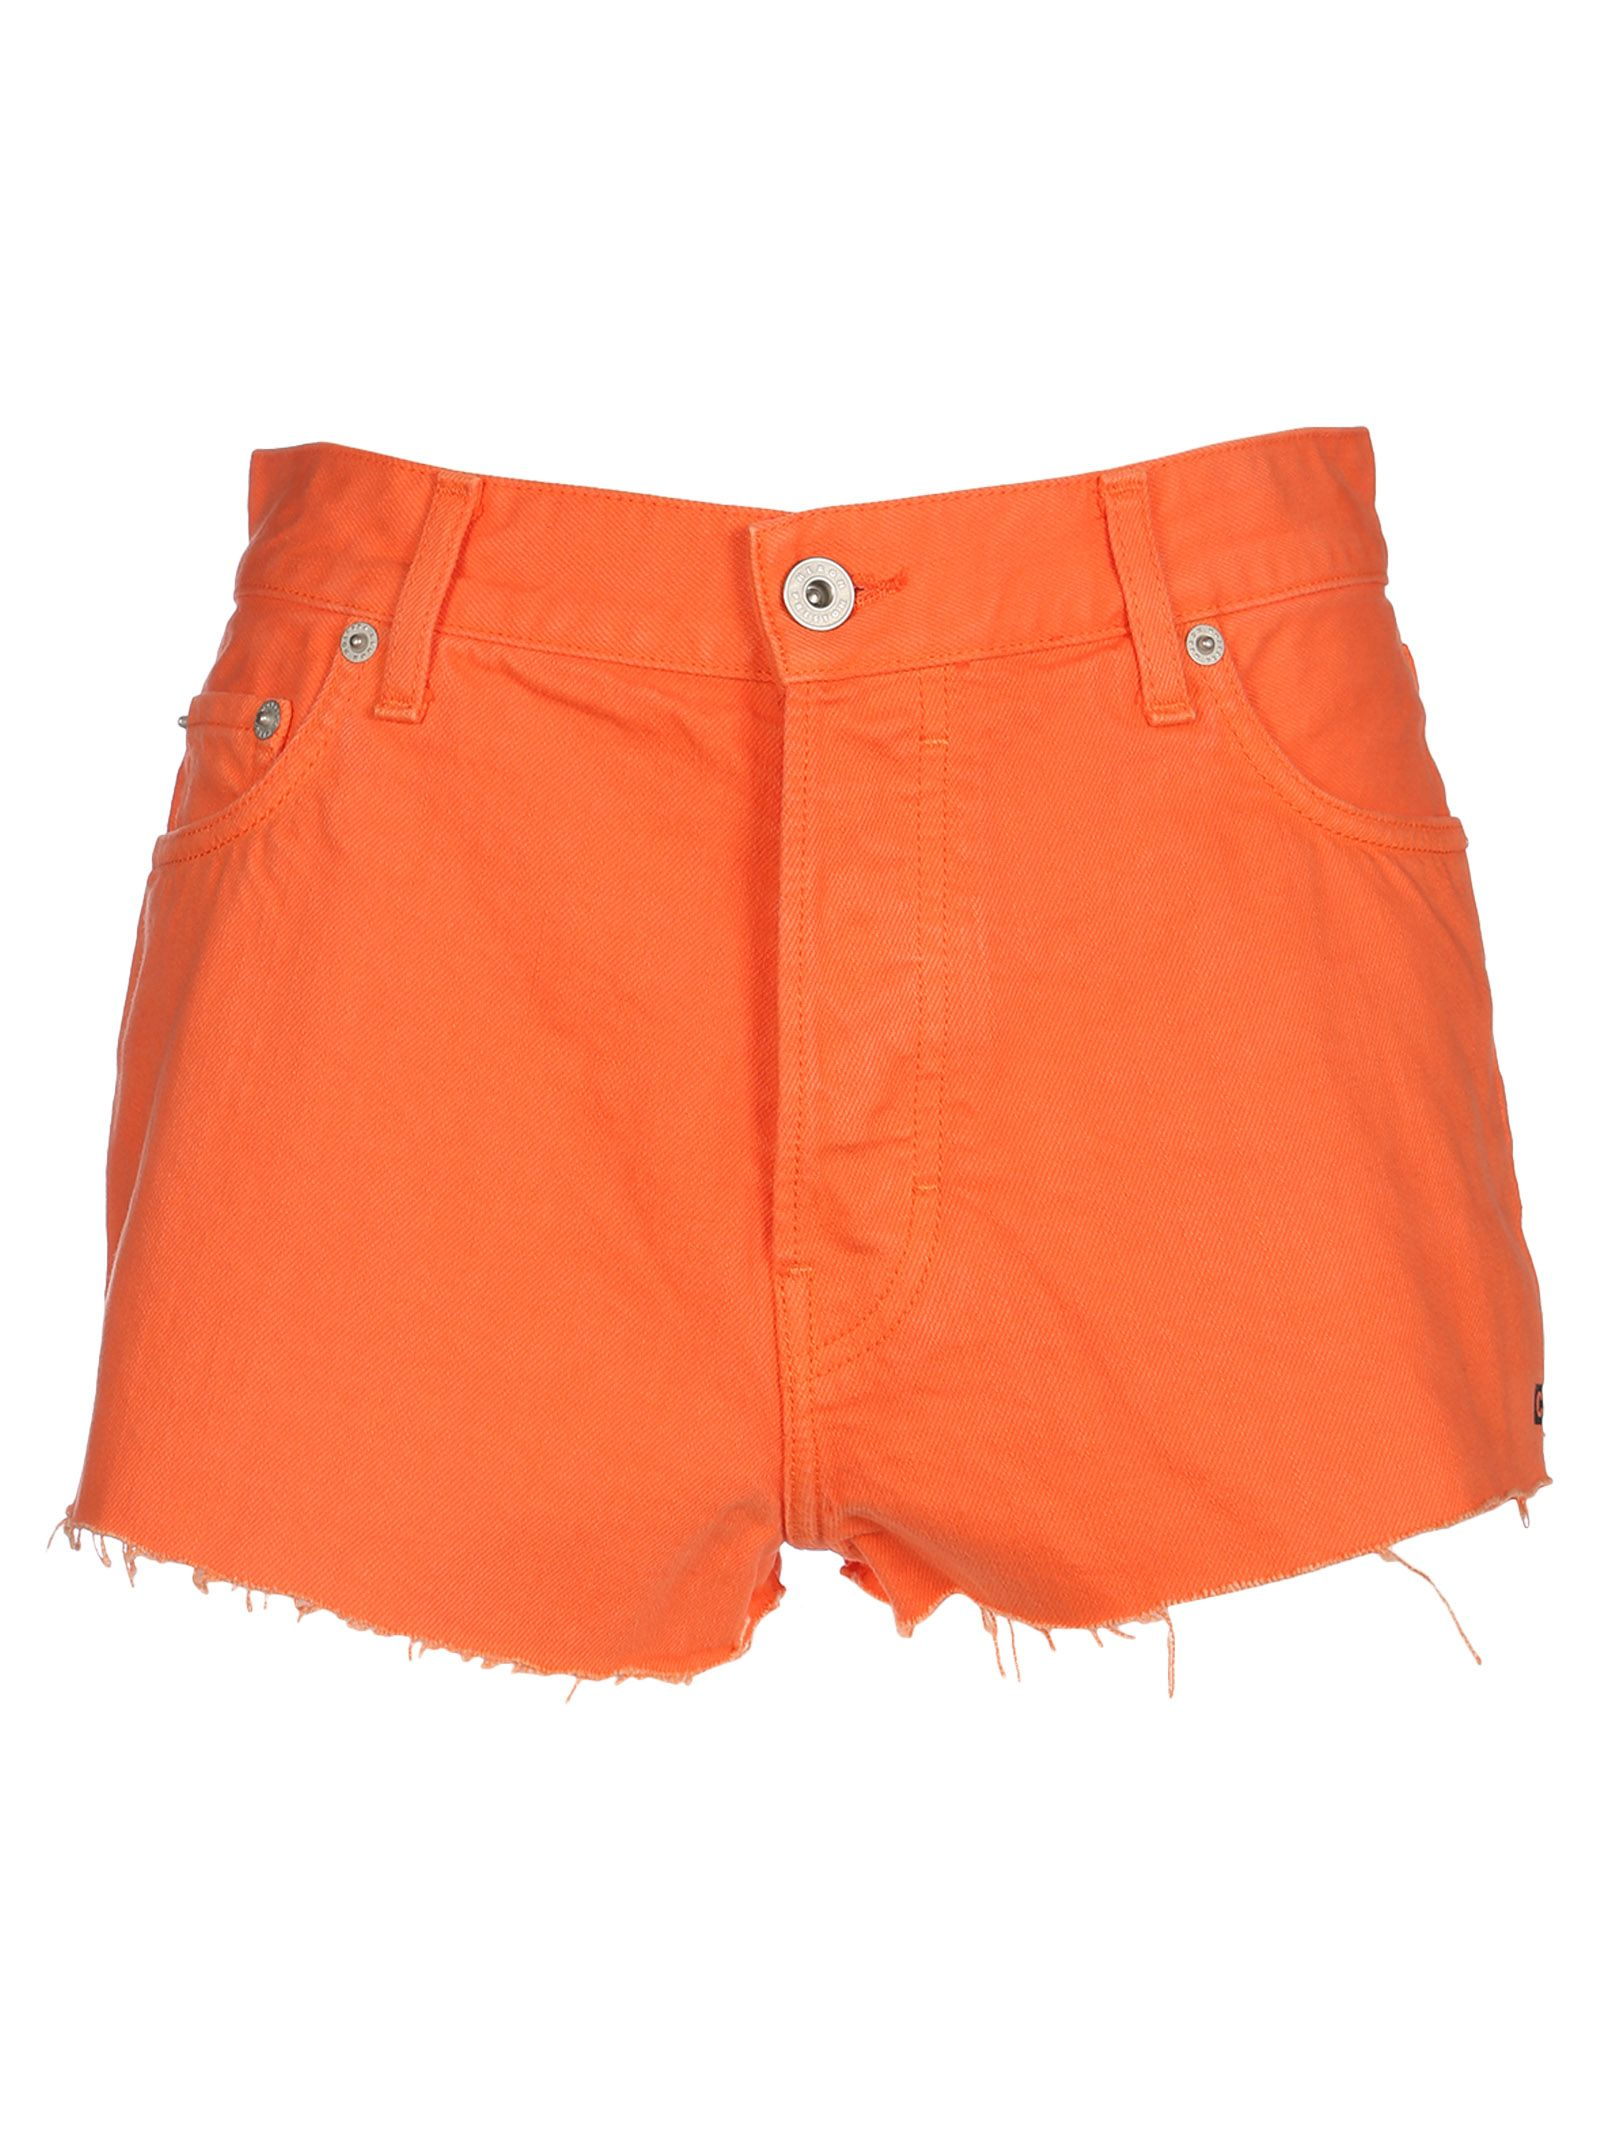 Heron Preston Raw Edge Short Shorts